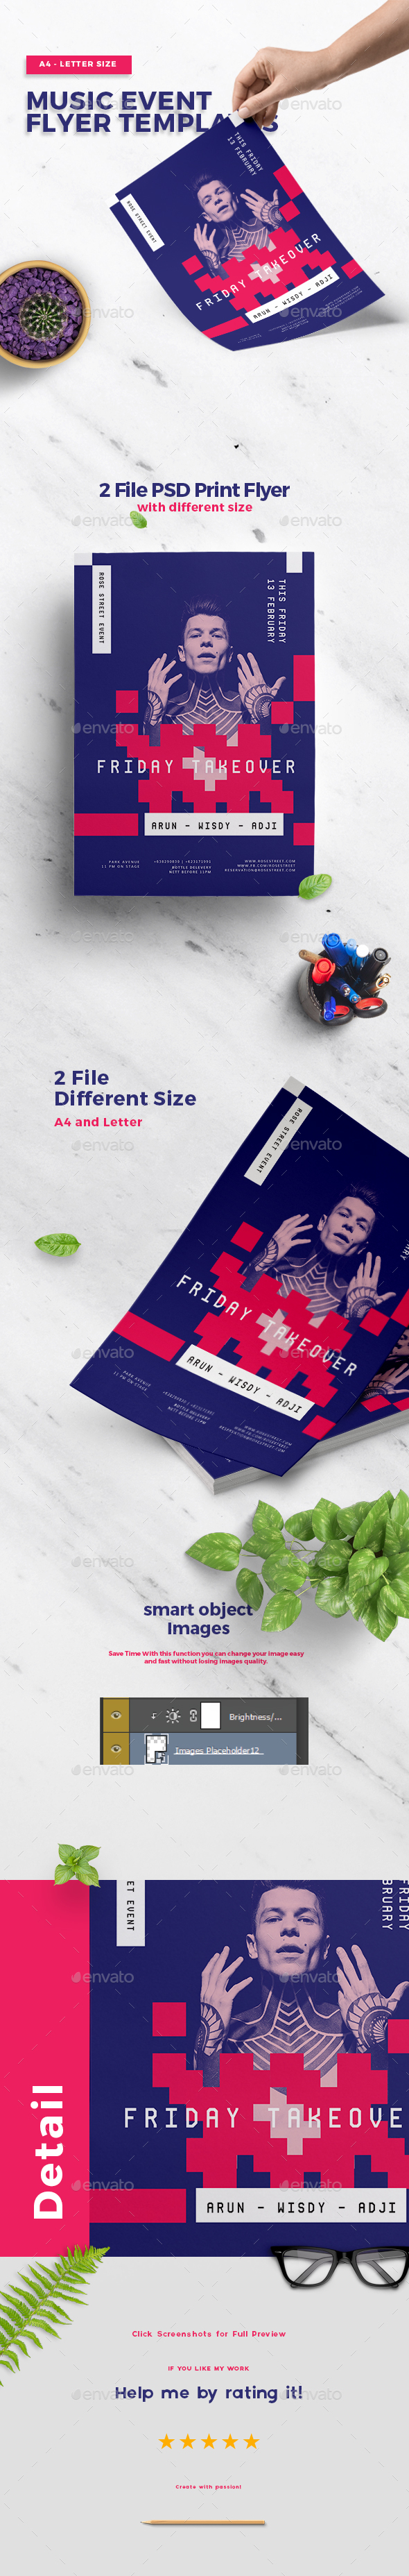 Music Event Flyer Templates - Clubs & Parties Events